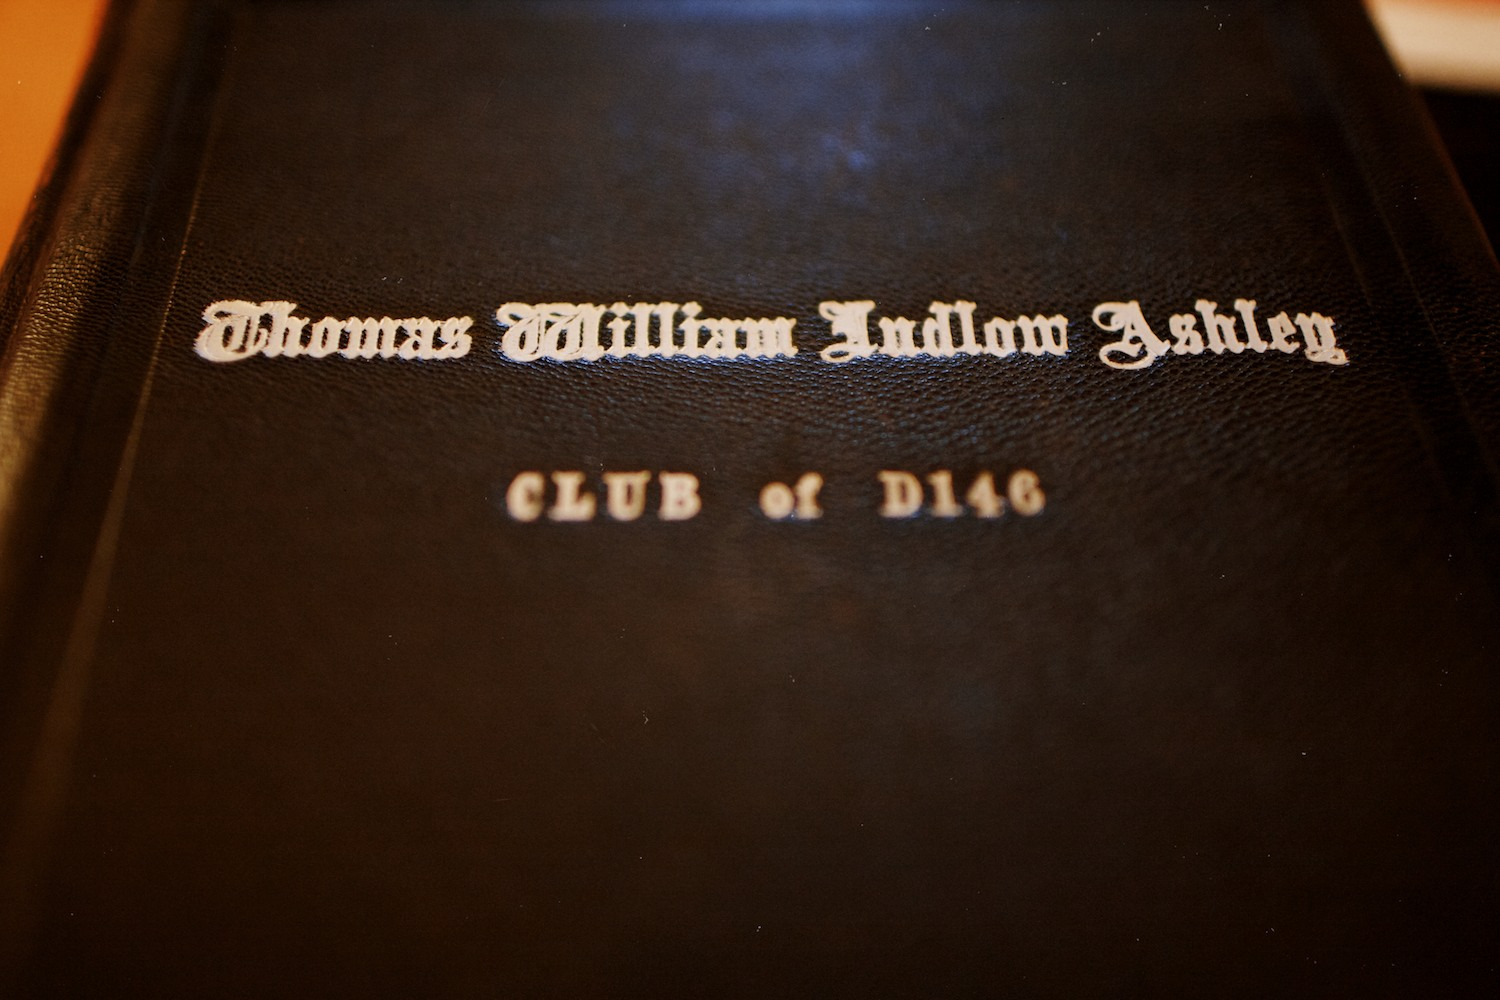 Thomas W. L. Ashley's Skull and Bones 1948 yearbook.